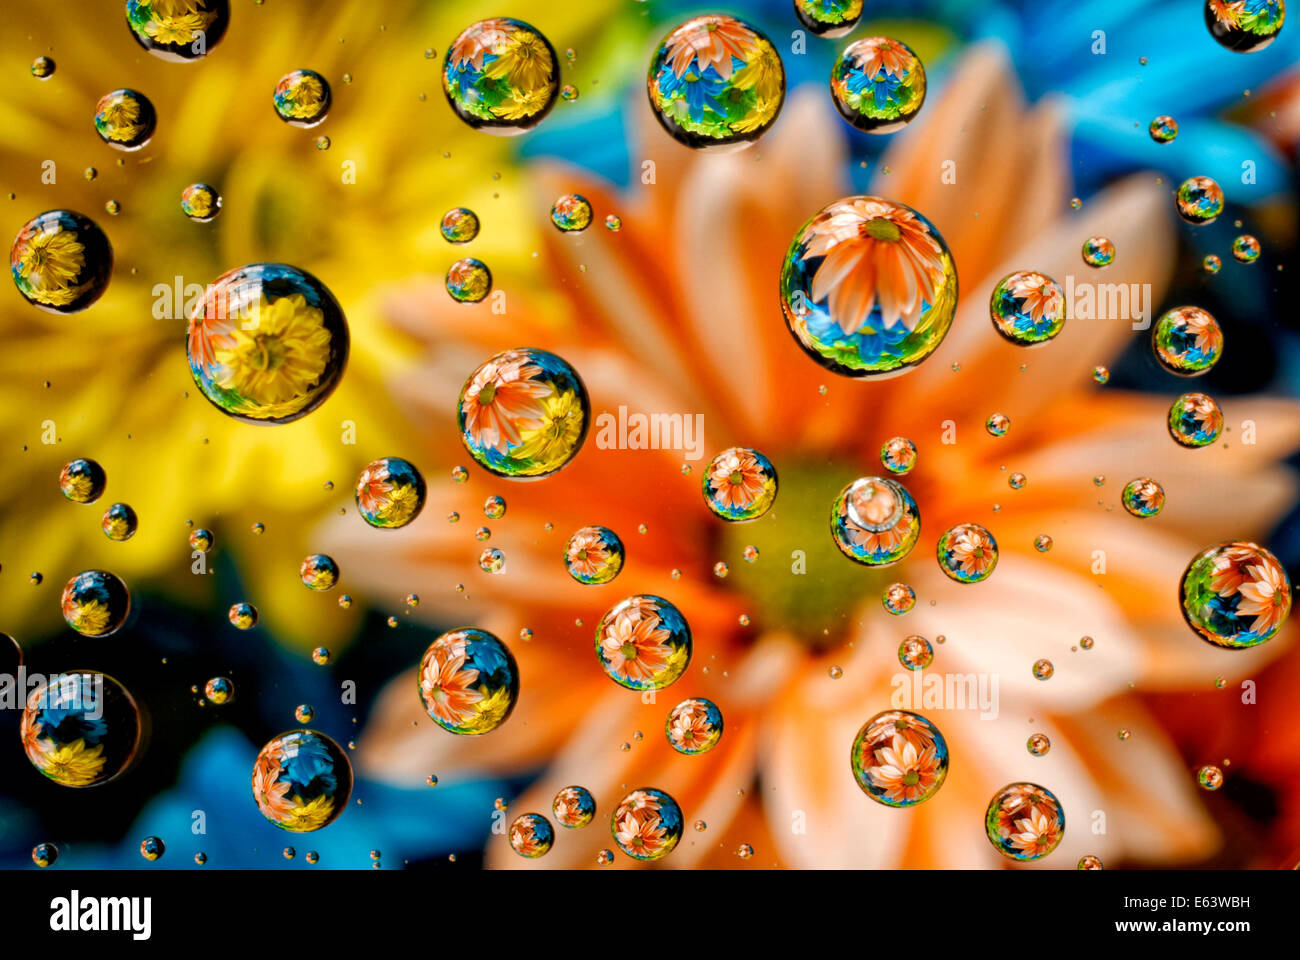 Abstract photograph of flowers reflected in water droplets - Stock Image